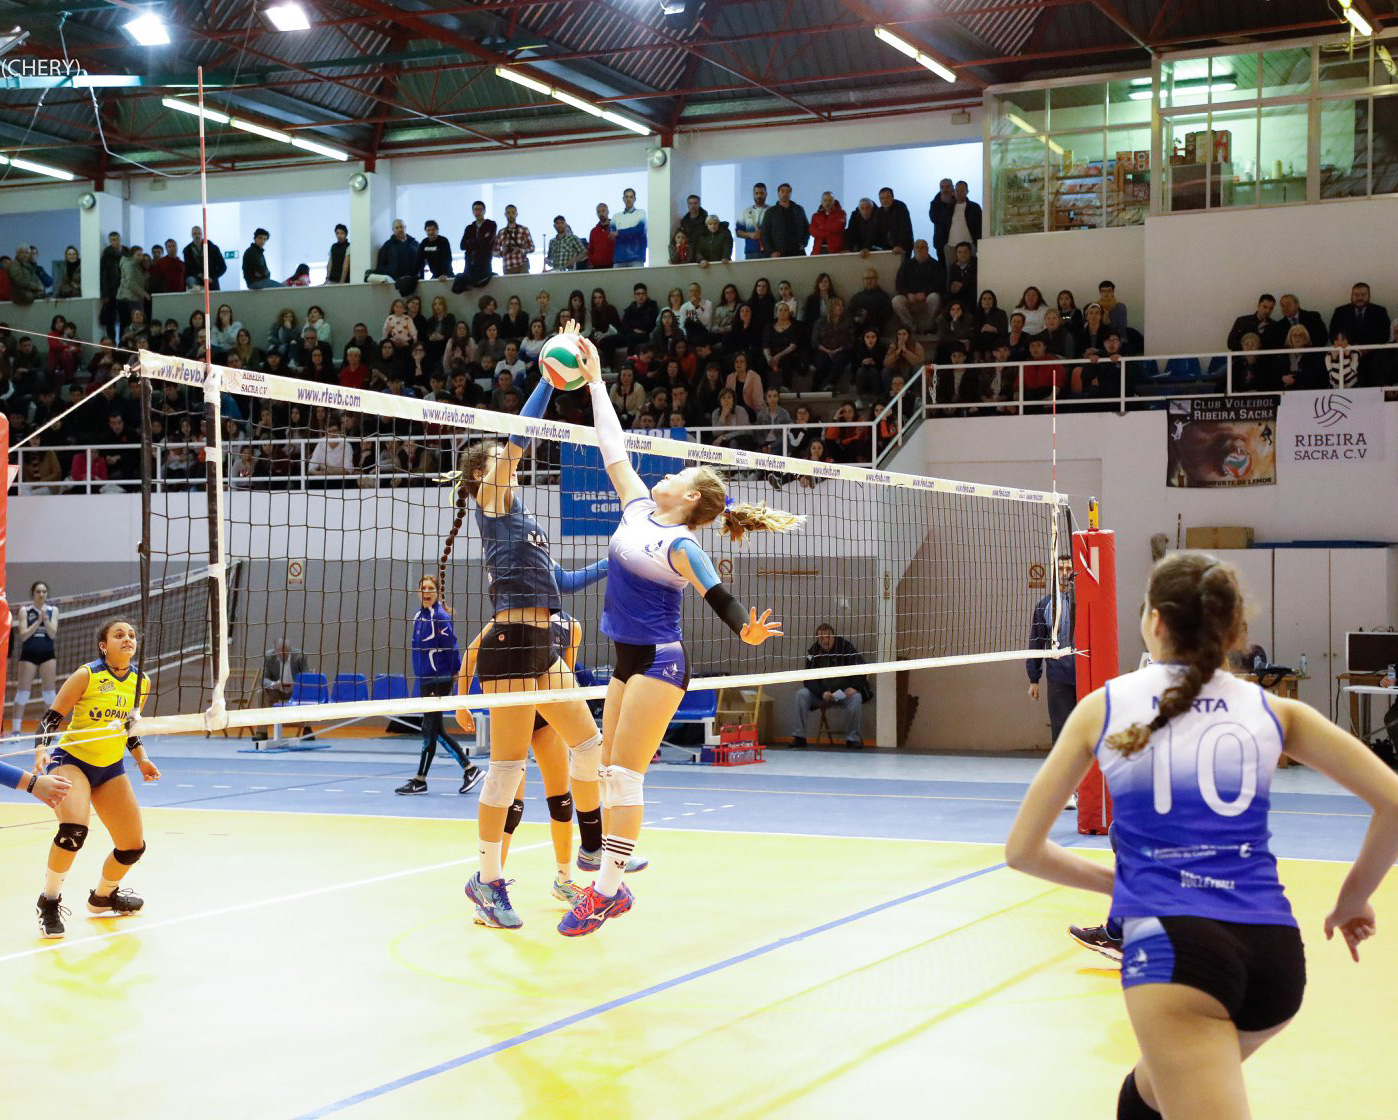 https://cvcalasancias.com/wp-content/uploads/2018/06/partido-voley.jpg